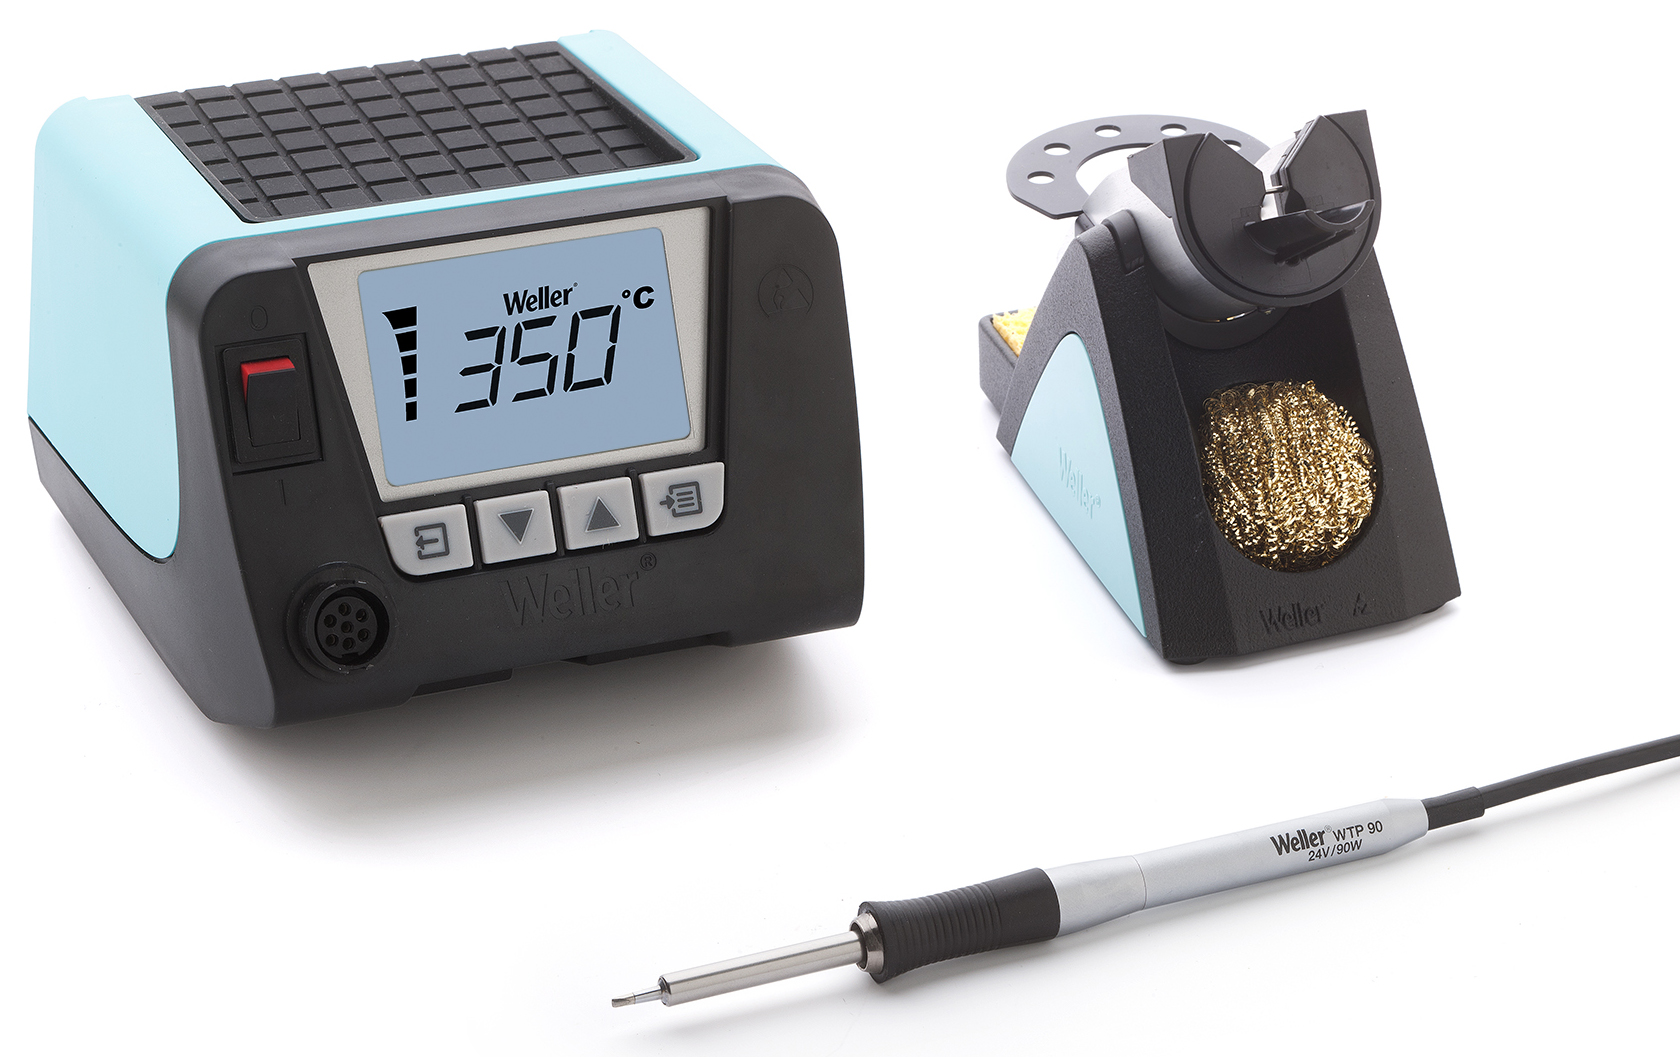 Weller WT1010N with WT1 Soldering Station and WTP90 Iron by Weller